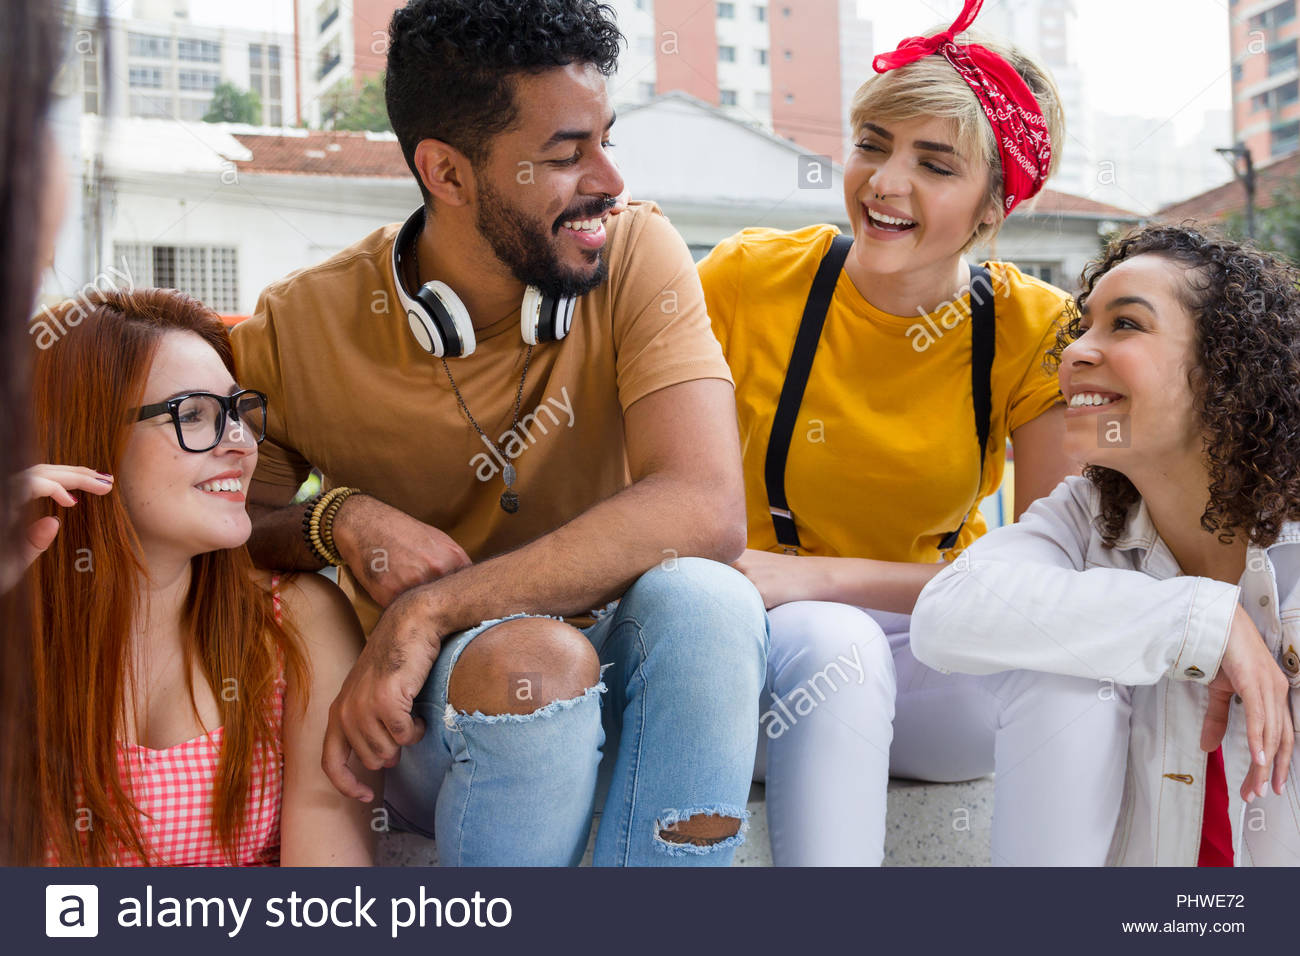 Happy friends smiling and sitting at cafe bar outdoor. Mixed race group socializing in a party at restaurant outside. Summer, warm, friendship, divers - Stock Image